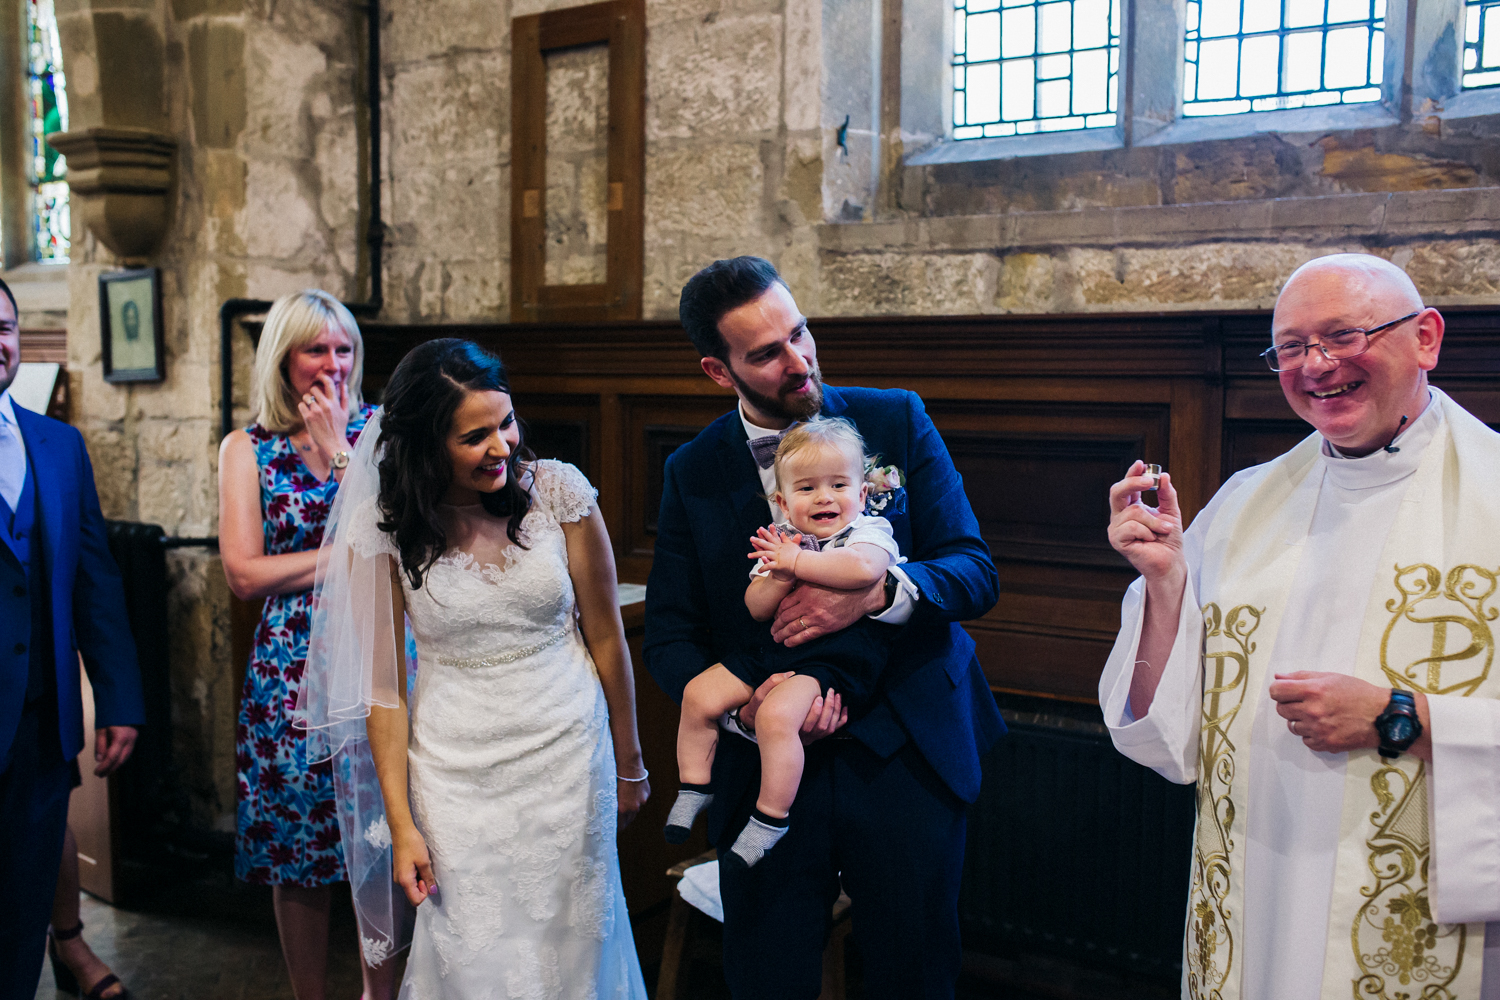 abride and groom have their baby christened. village hall wedding venue north yorkshire northallerton. stop motion wedding films videos uk